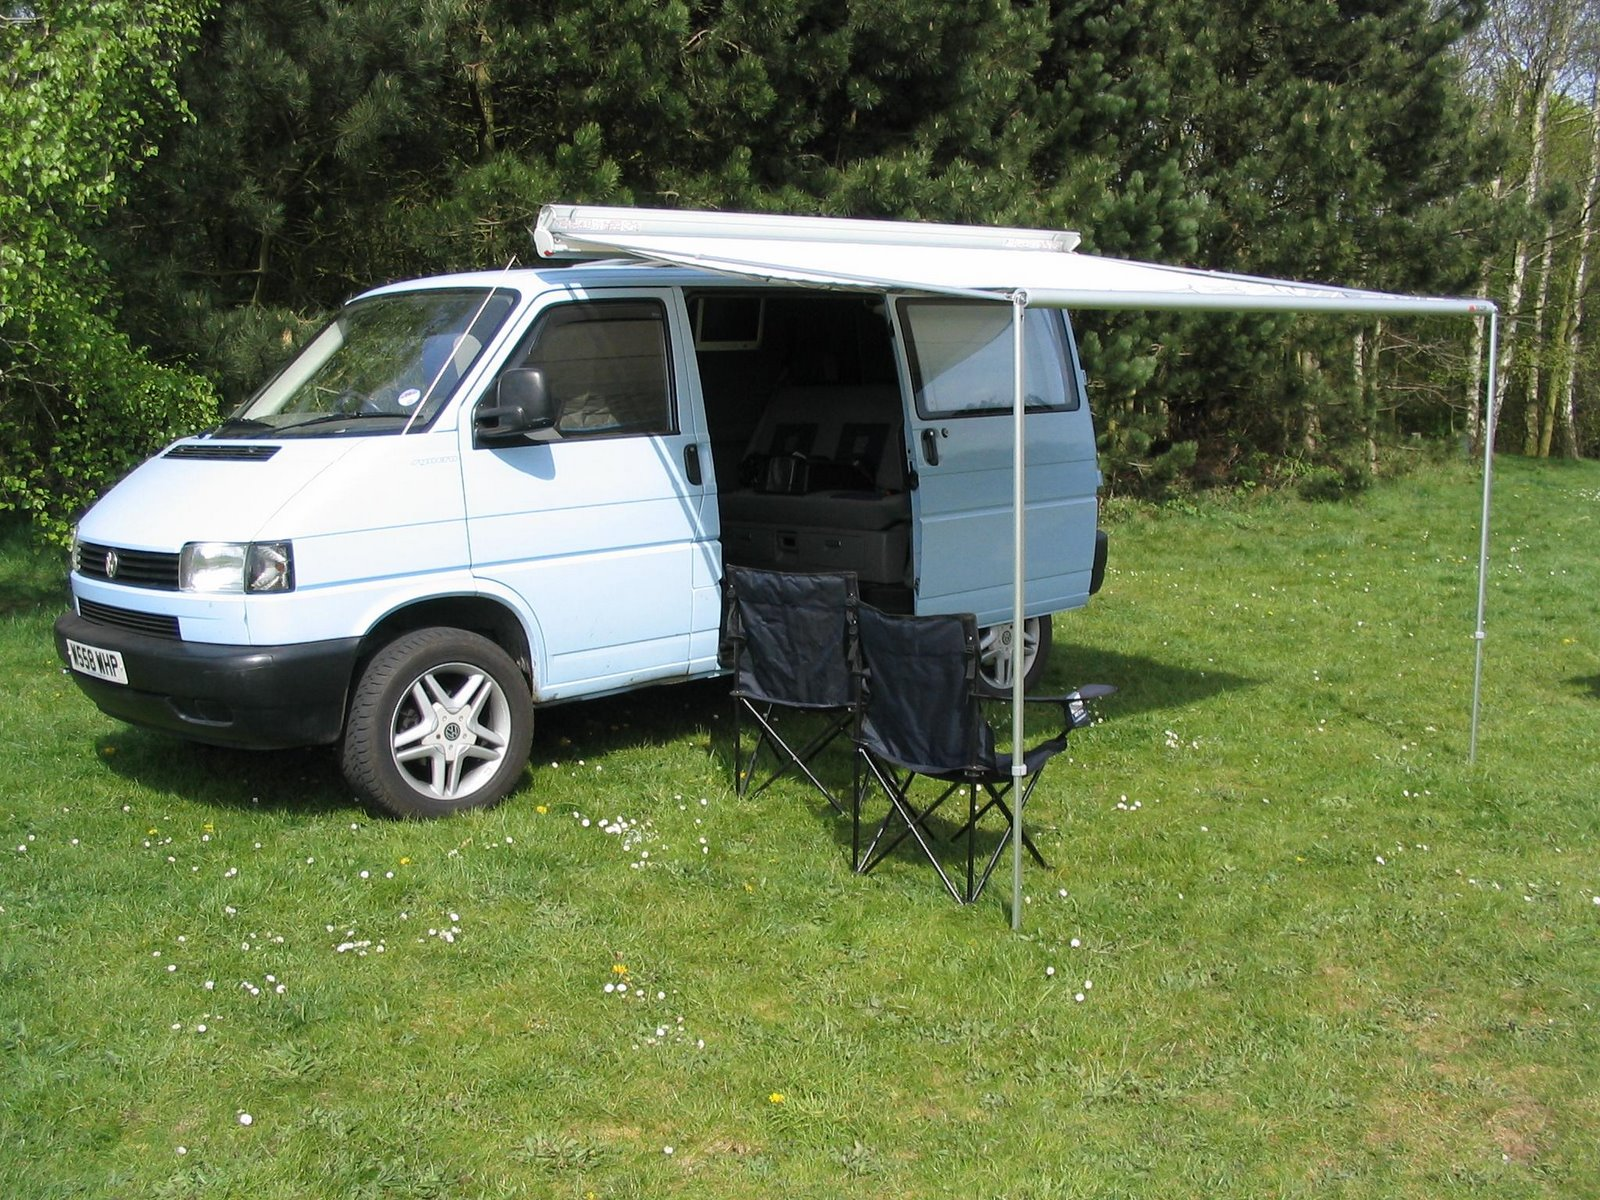 Camper Van Awnings Rainwear